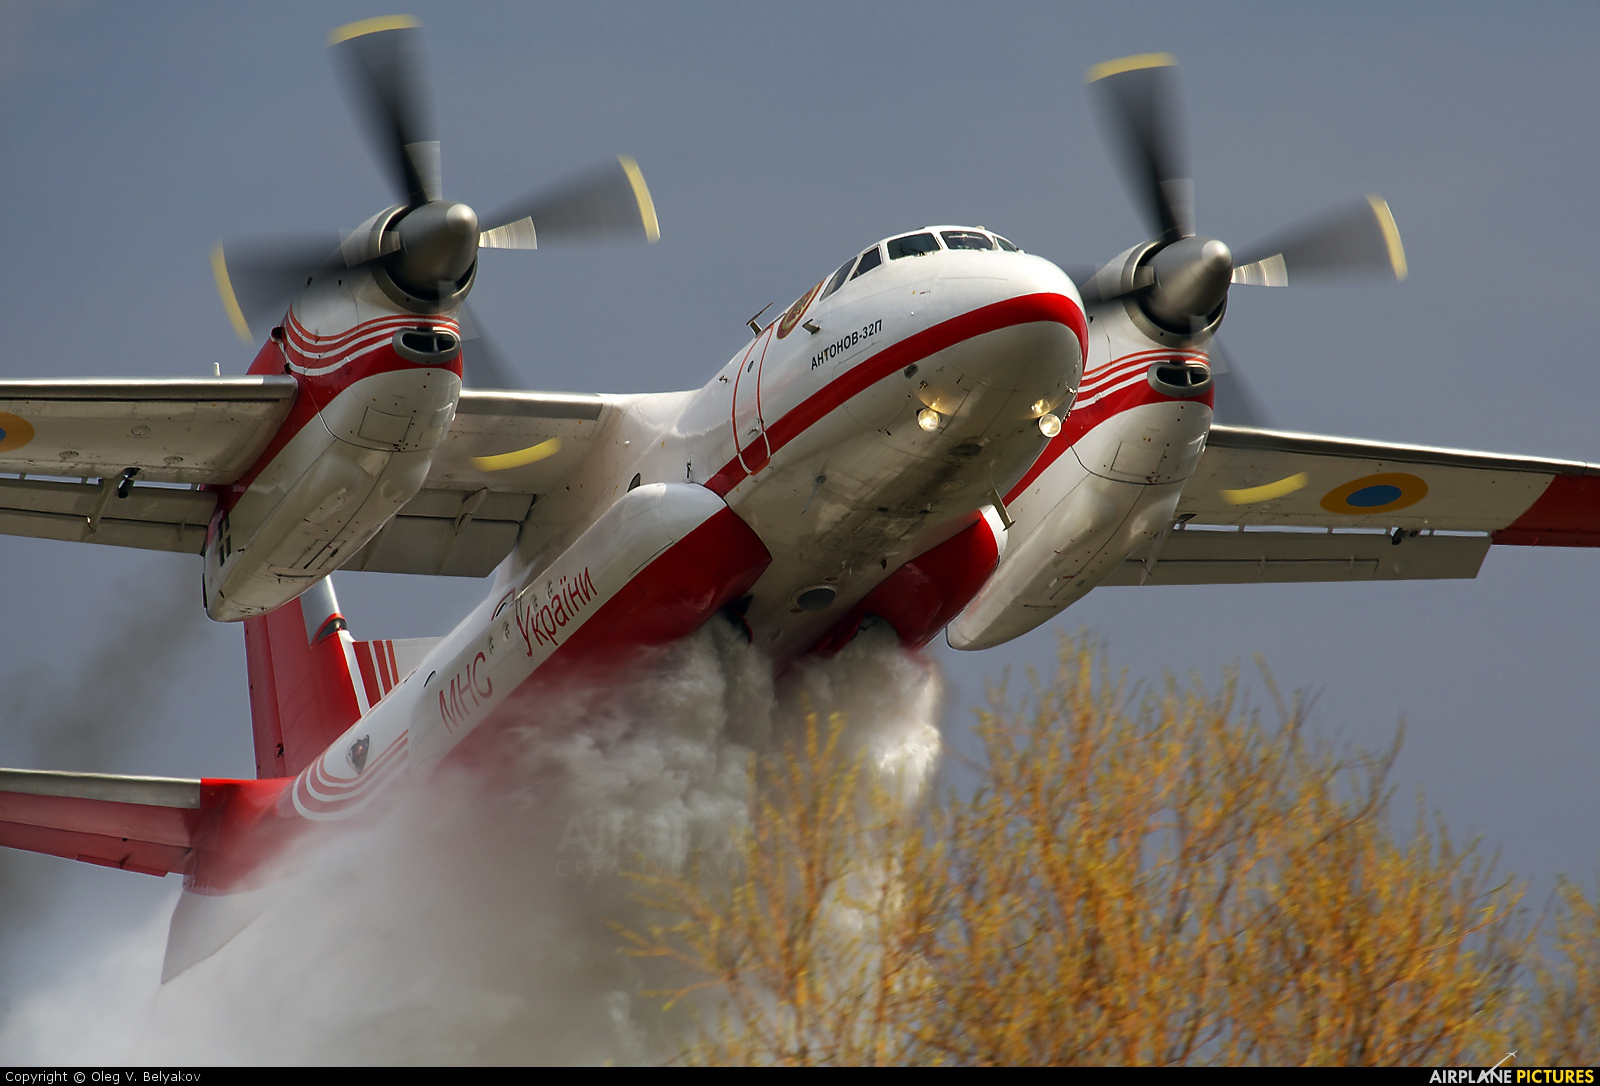 Ukraine - Ministry of Emergency Situations 31 aircraft at Nizhyn